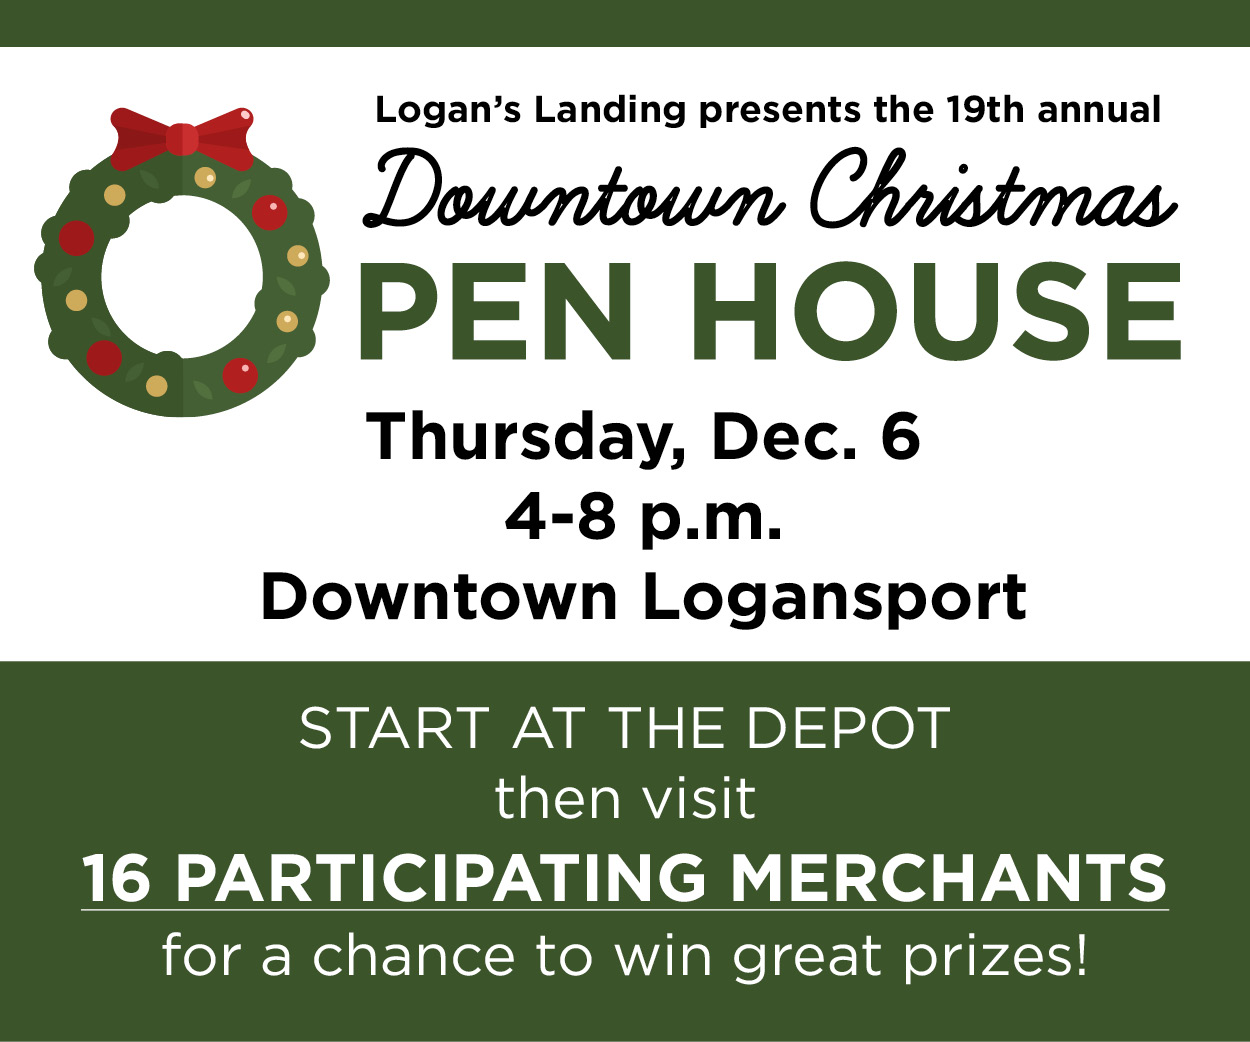 Logan's Landing Downtown Christmas Open House